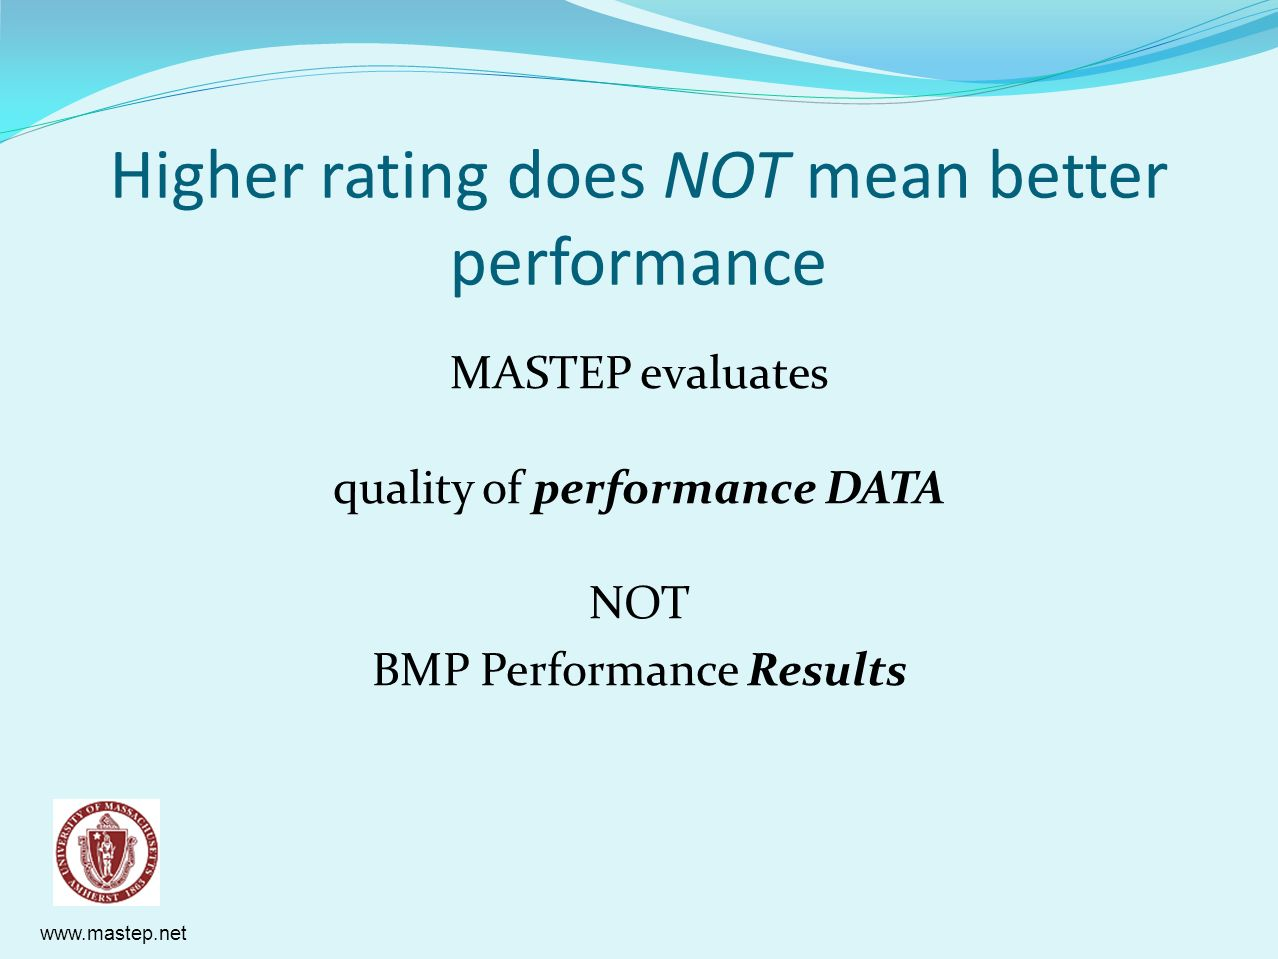 Higher rating does NOT mean better performance